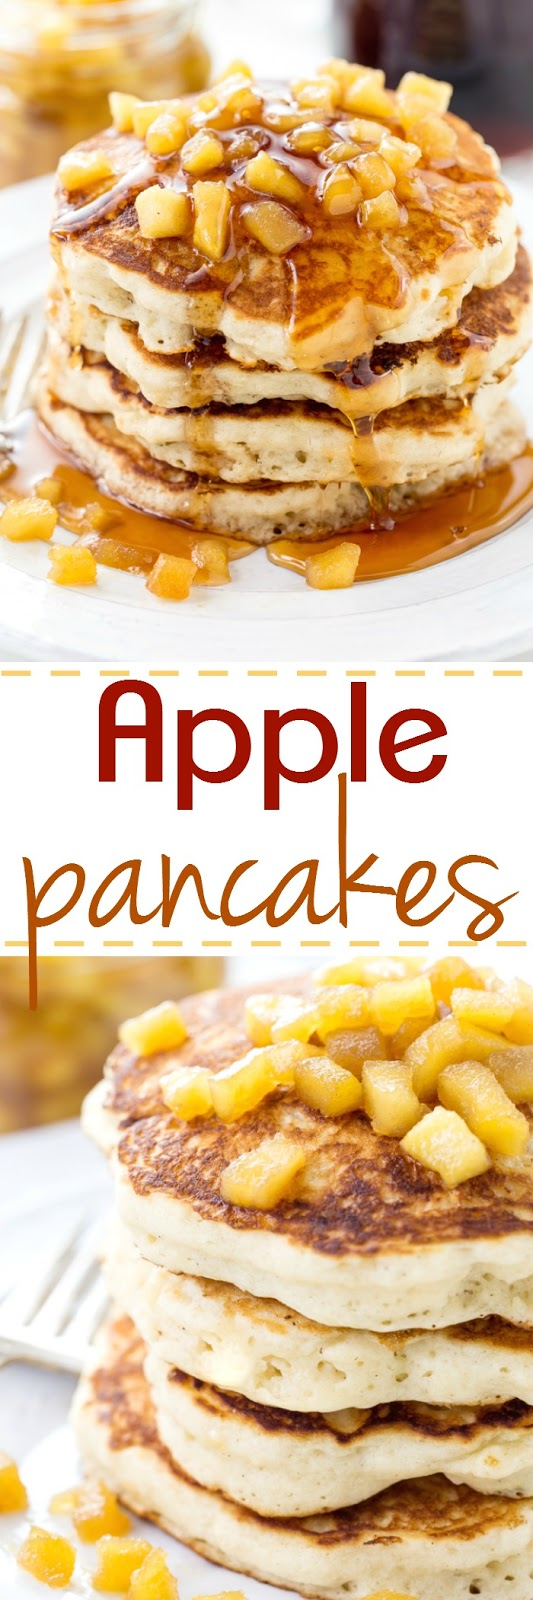 These are the fluffiest pancake recipe around and are topped with sweet apples sauteed in a maple sauce.